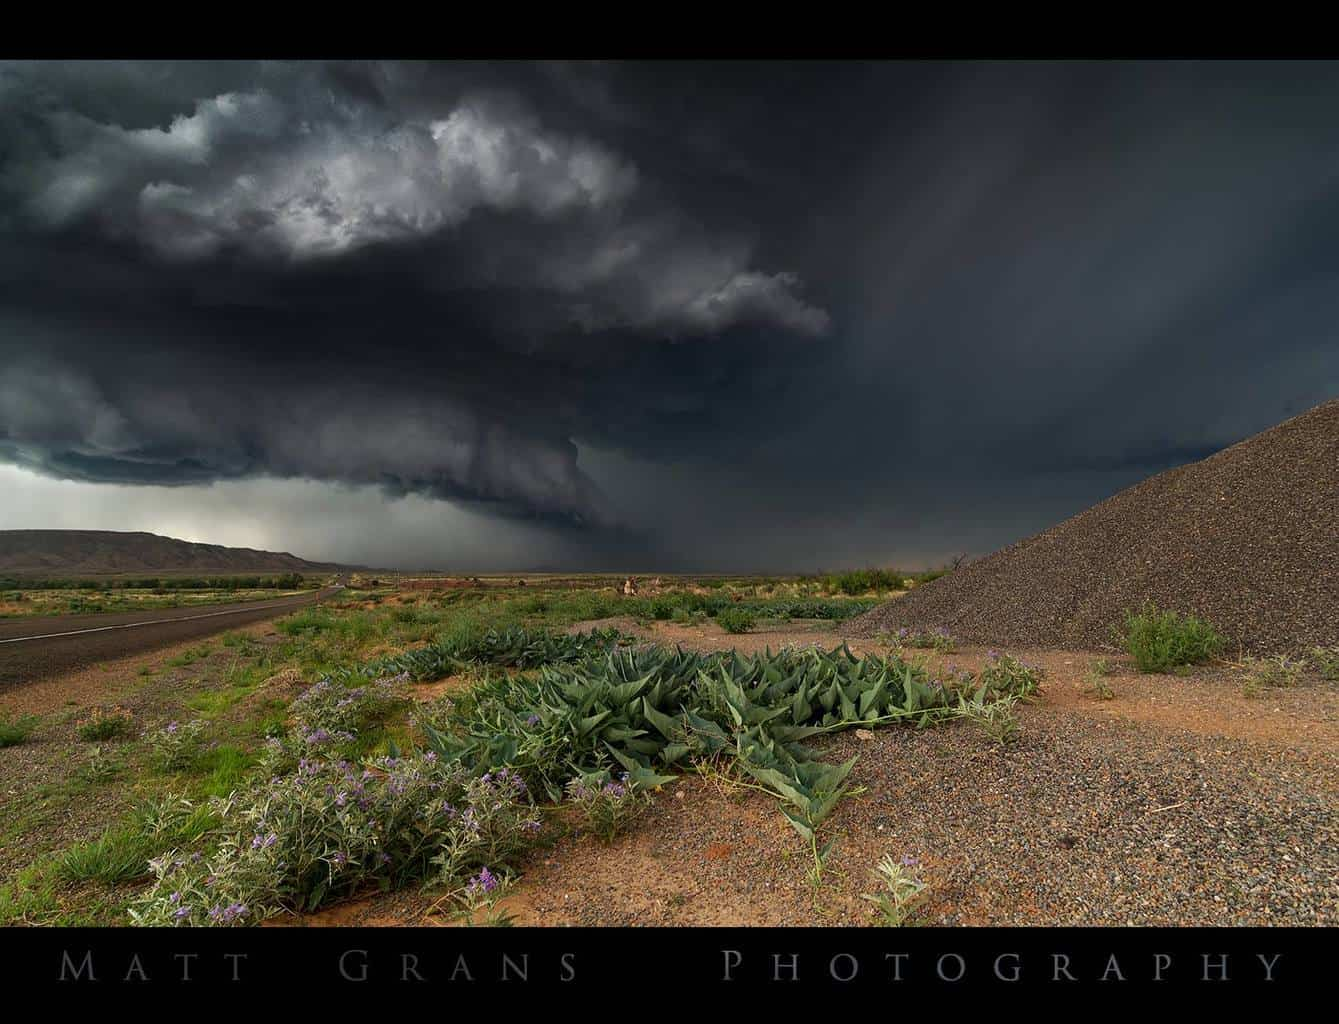 Storm over New Mexico Shot two years ago while driving for Weather Adventures. We watched this monster brew and churn for over an hour. An amazing storm!